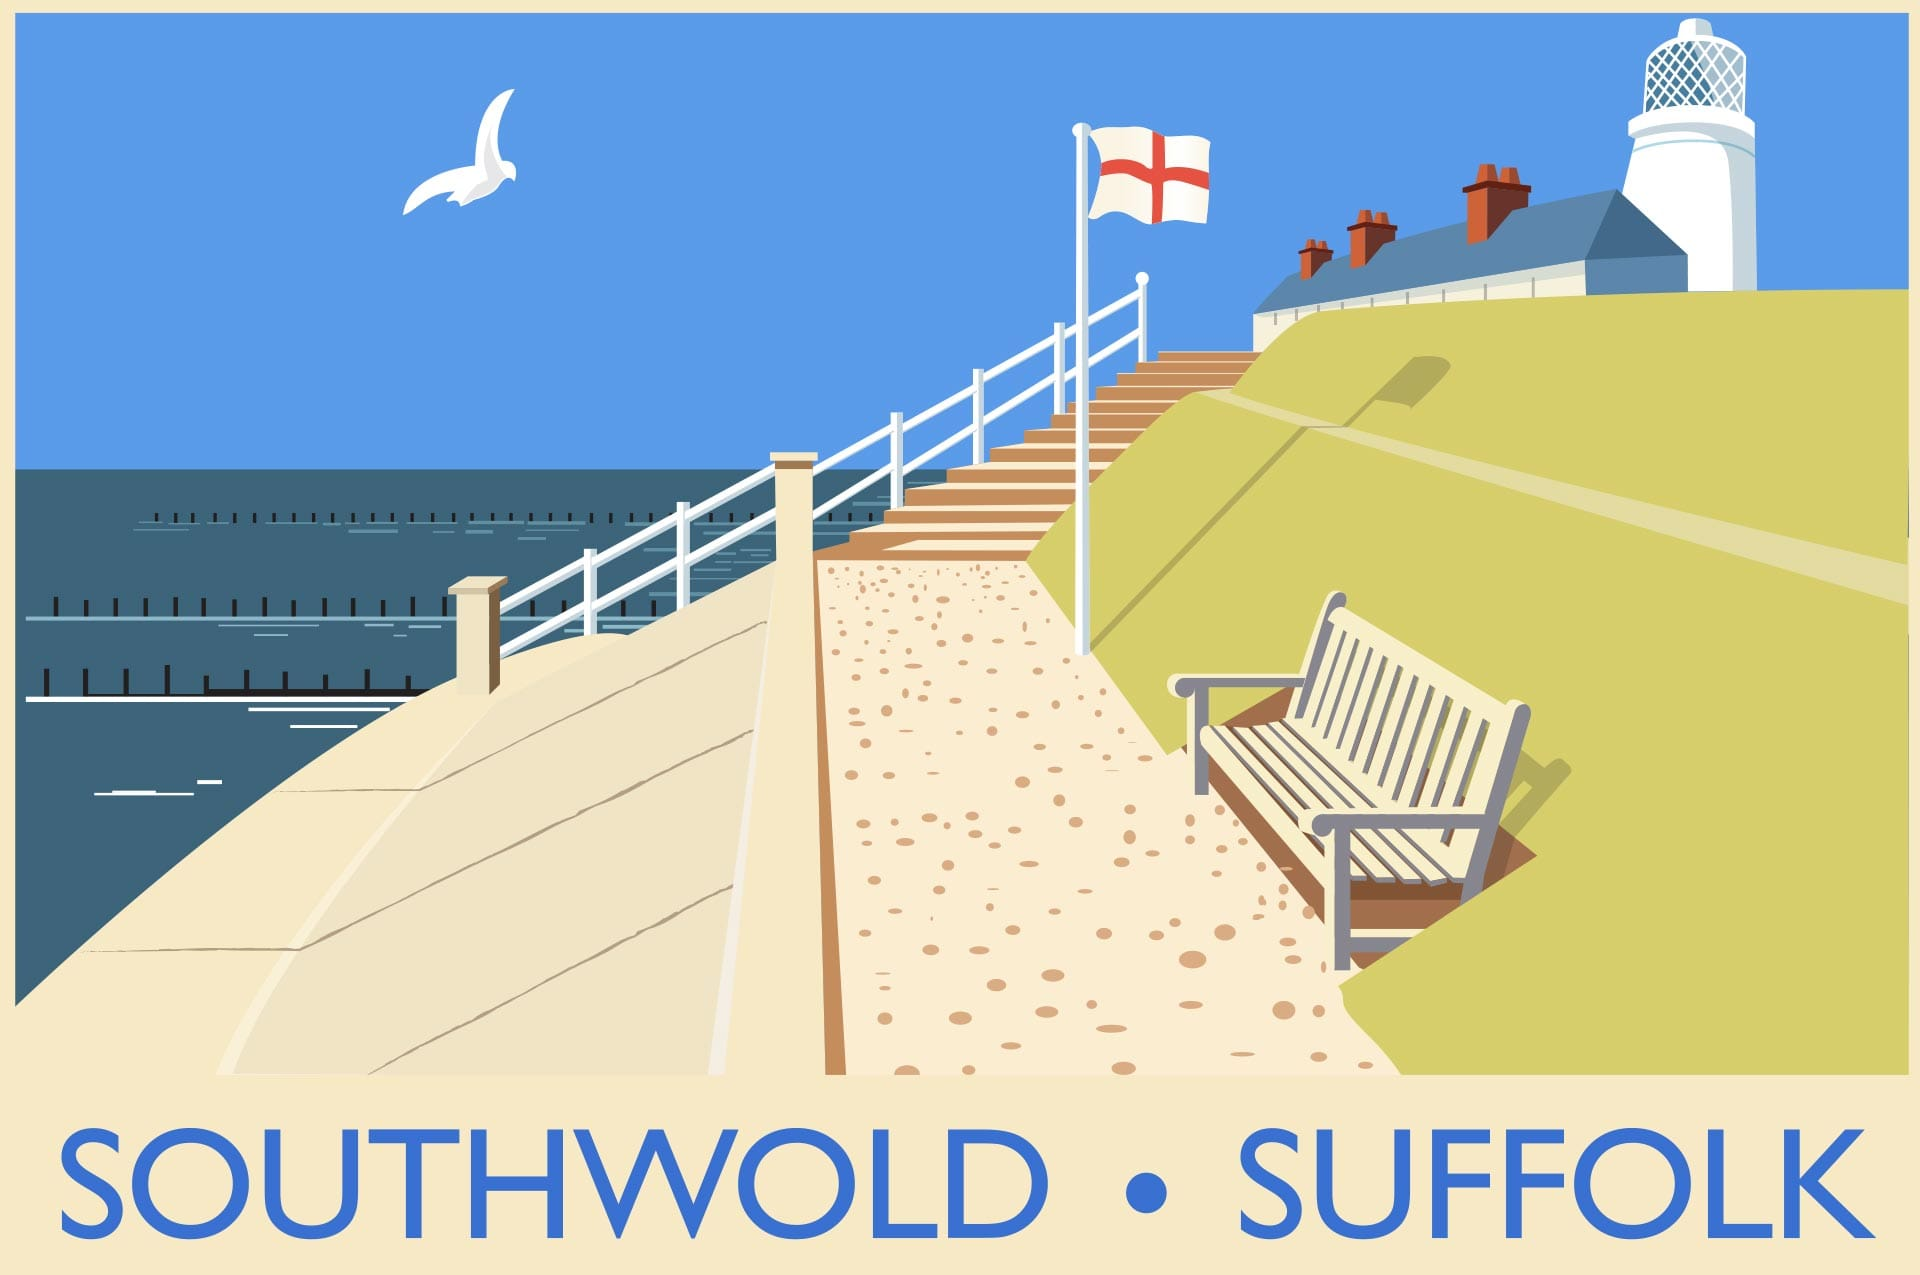 Illustration: People & Places - Southwold